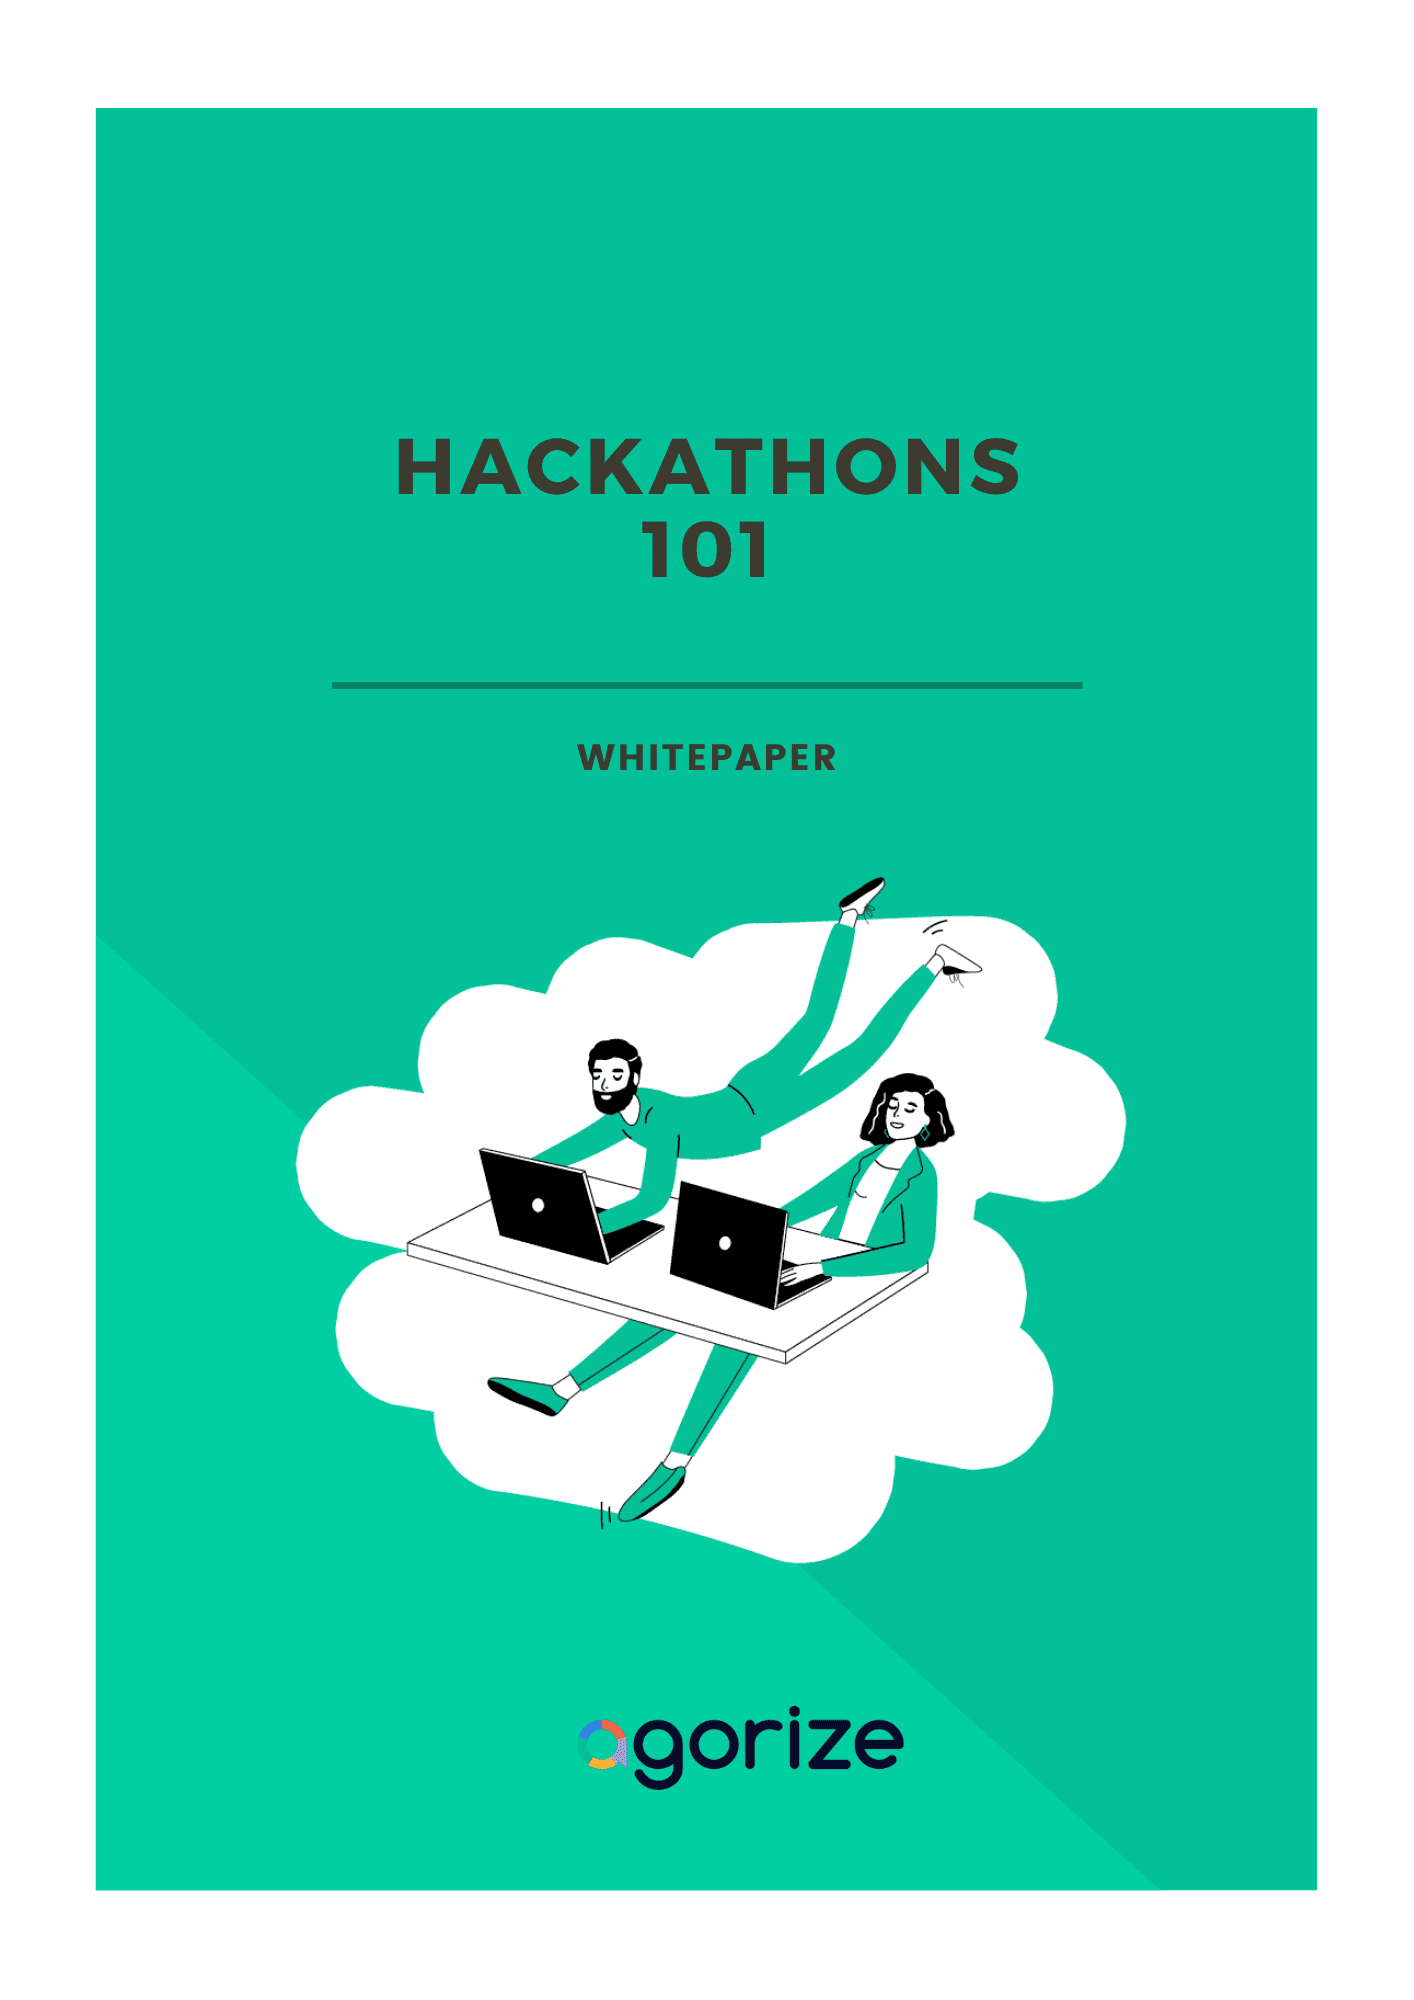 hackathon 101 whitepaper cover